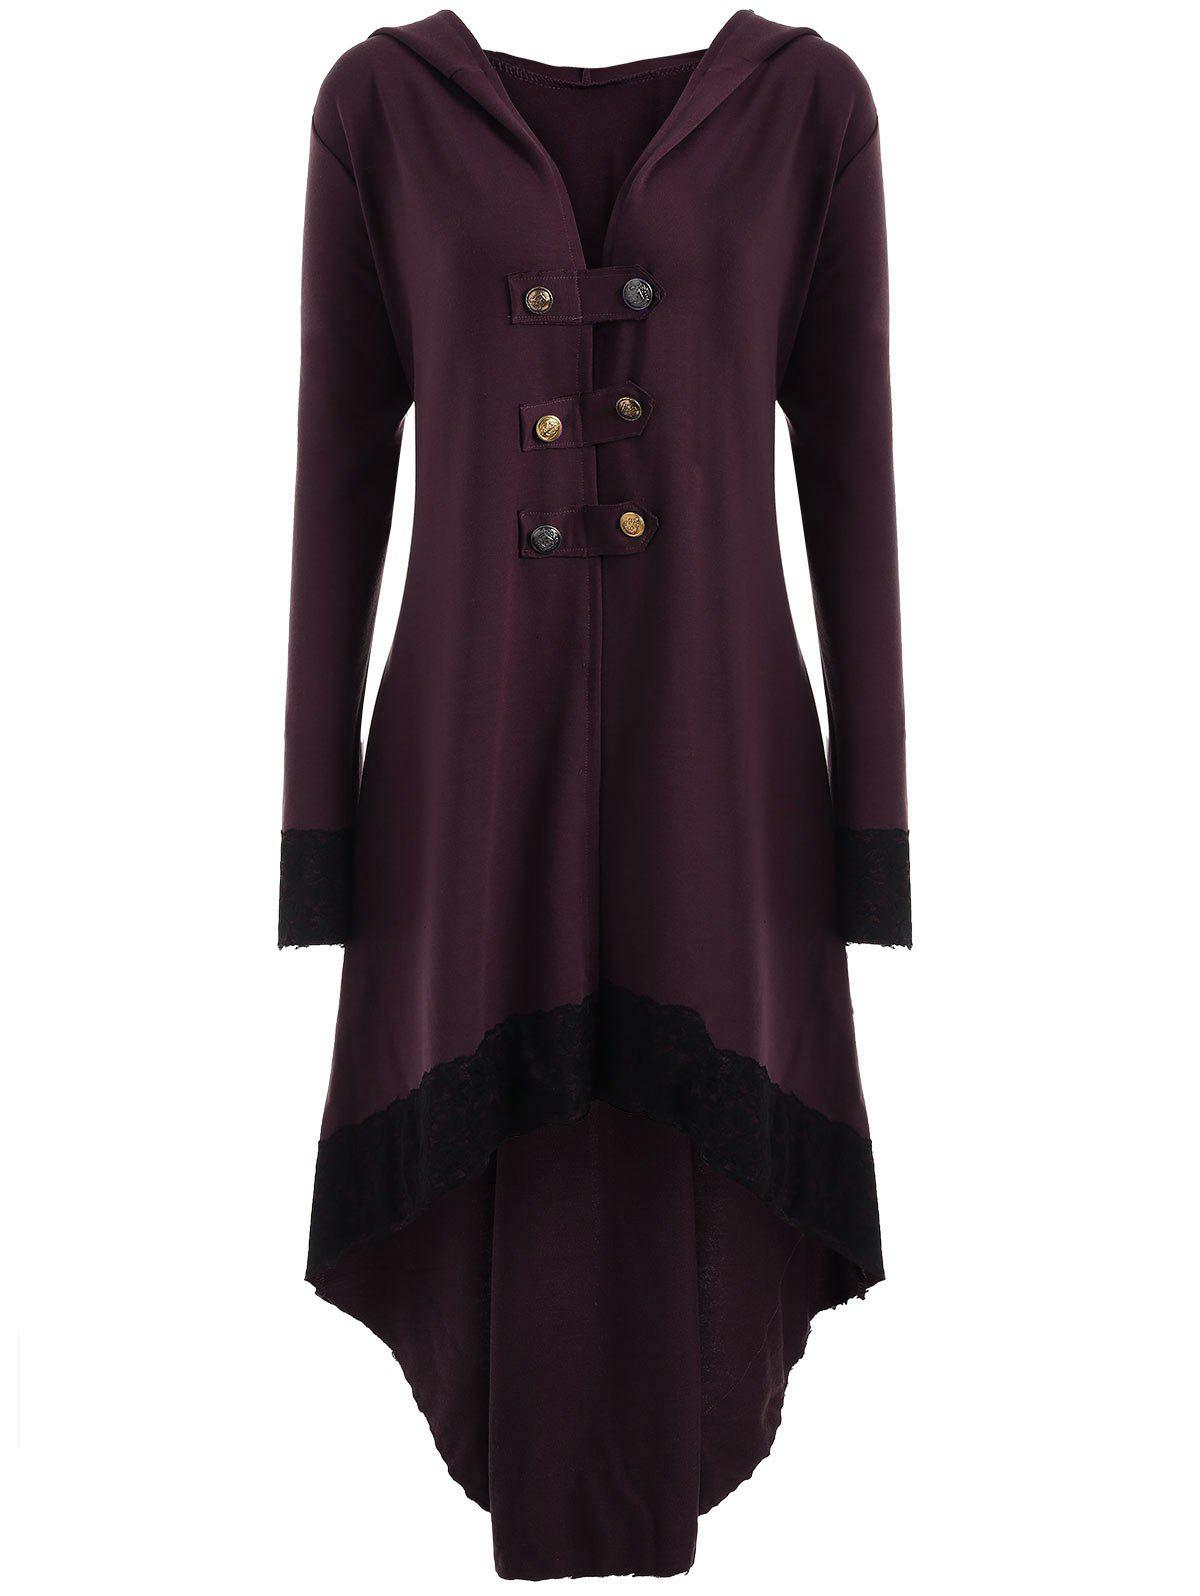 High Low Hooded Plus Size Lace-up CoatWOMEN<br><br>Size: 3XL; Color: WINE RED; Clothes Type: Others; Material: Polyester,Spandex; Type: Asymmetric Length; Shirt Length: Long; Sleeve Length: Full; Collar: Hooded; Pattern Type: Solid; Style: Fashion; Season: Fall,Spring; Weight: 0.6200kg; Package Contents: 1 x Coat;